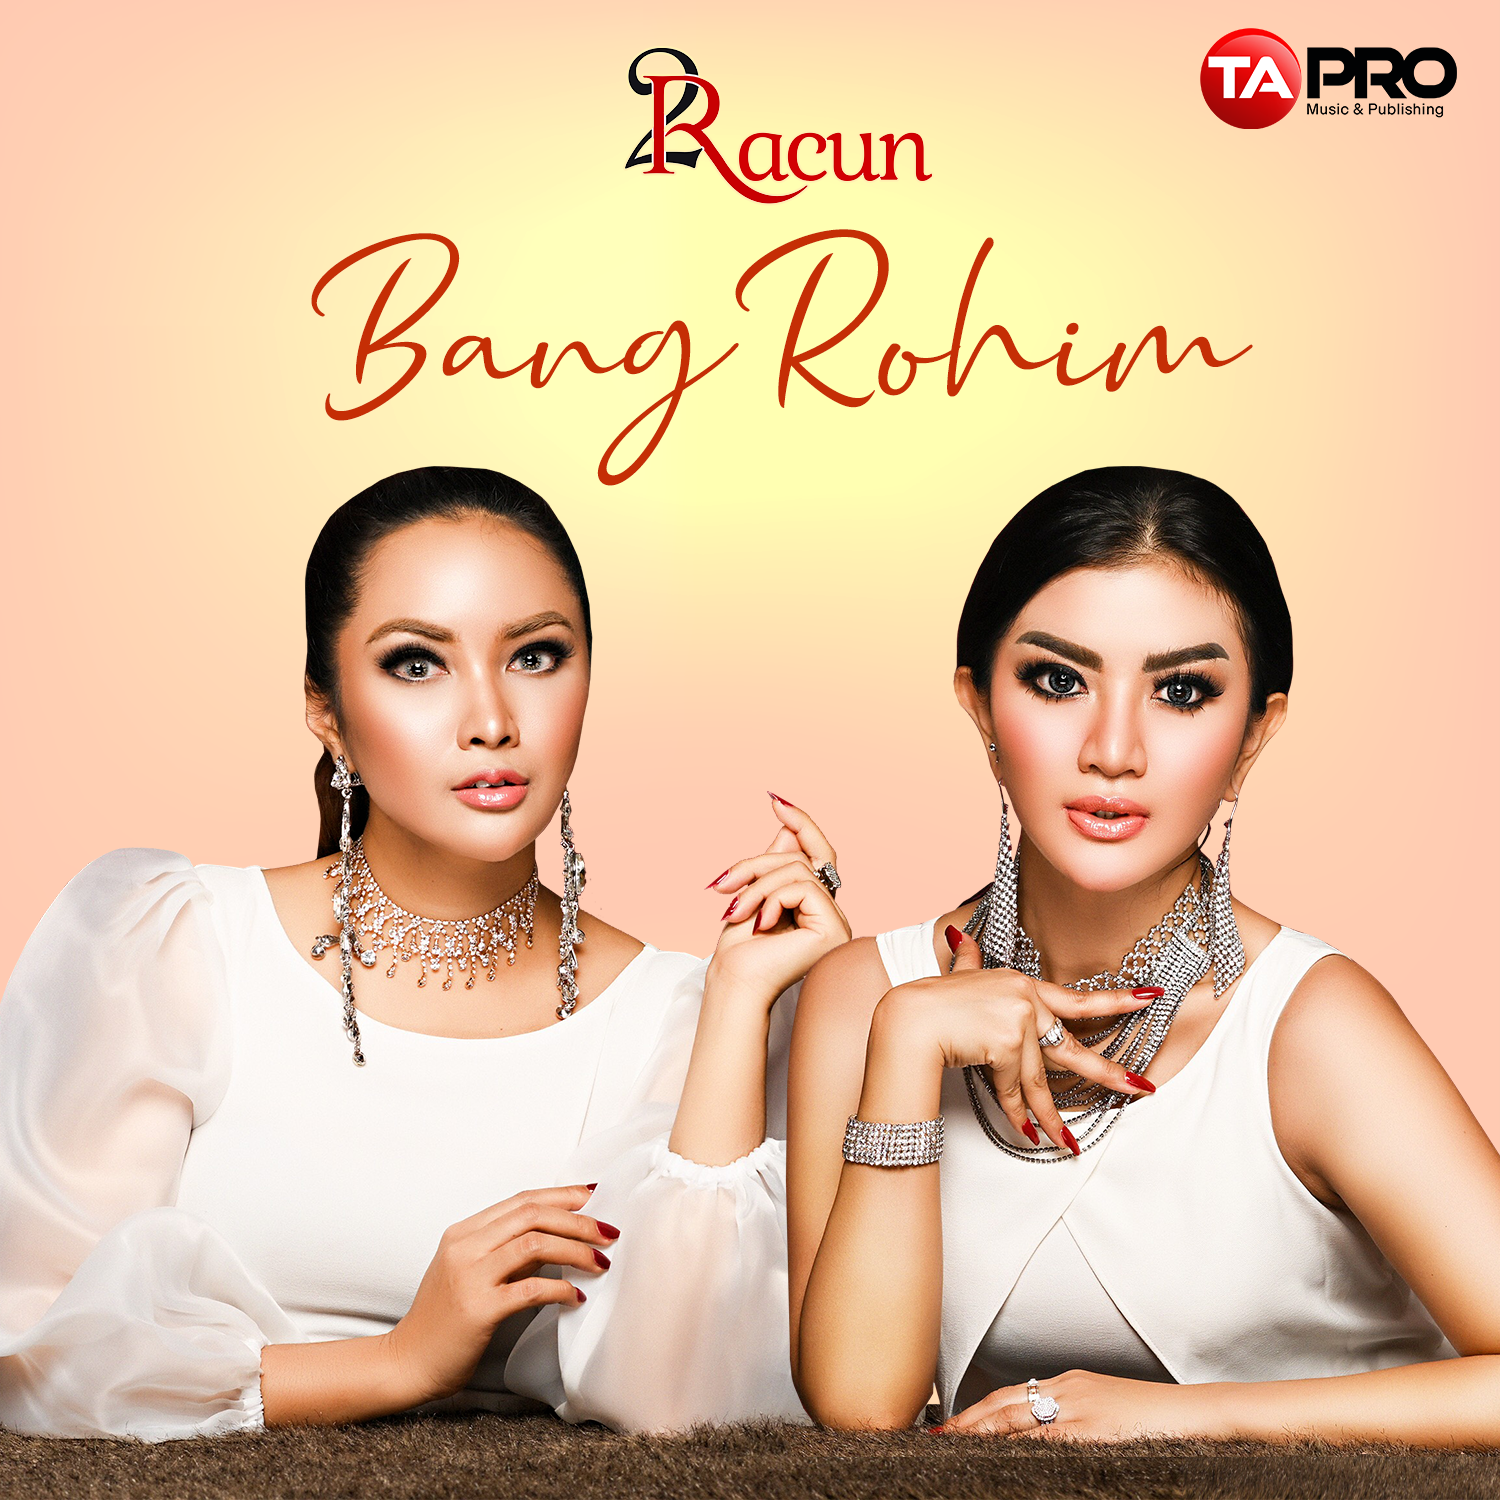 COVER 2RACUN 2020 – BANG ROHIM 1